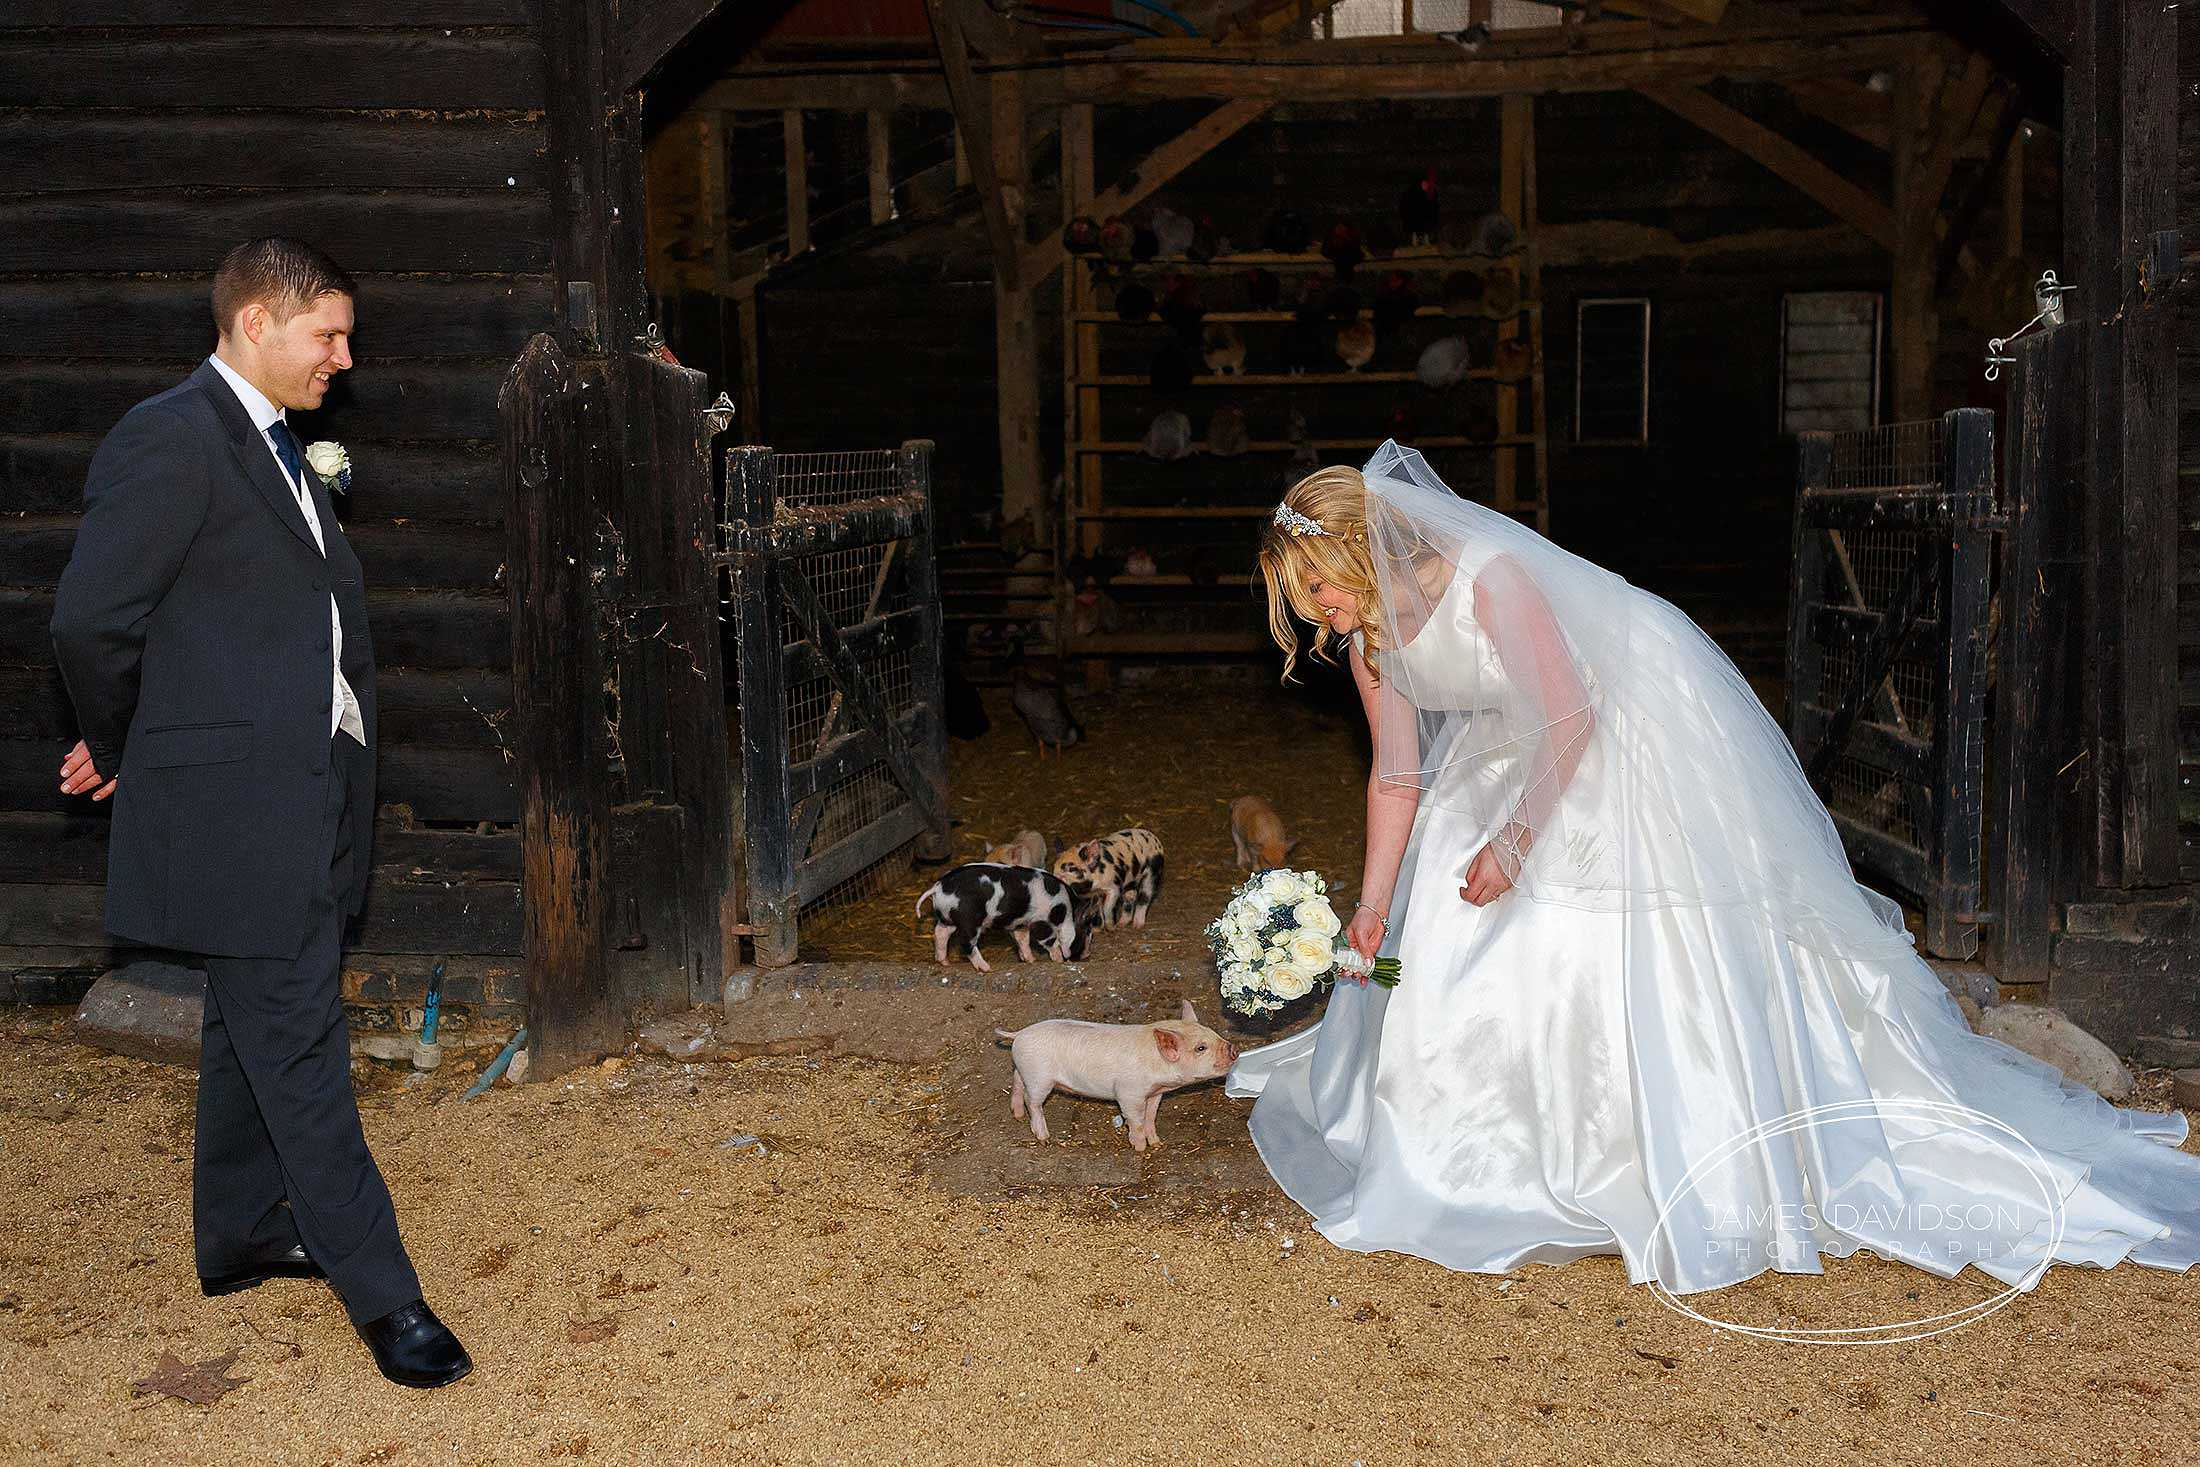 South Farm wedding piglets